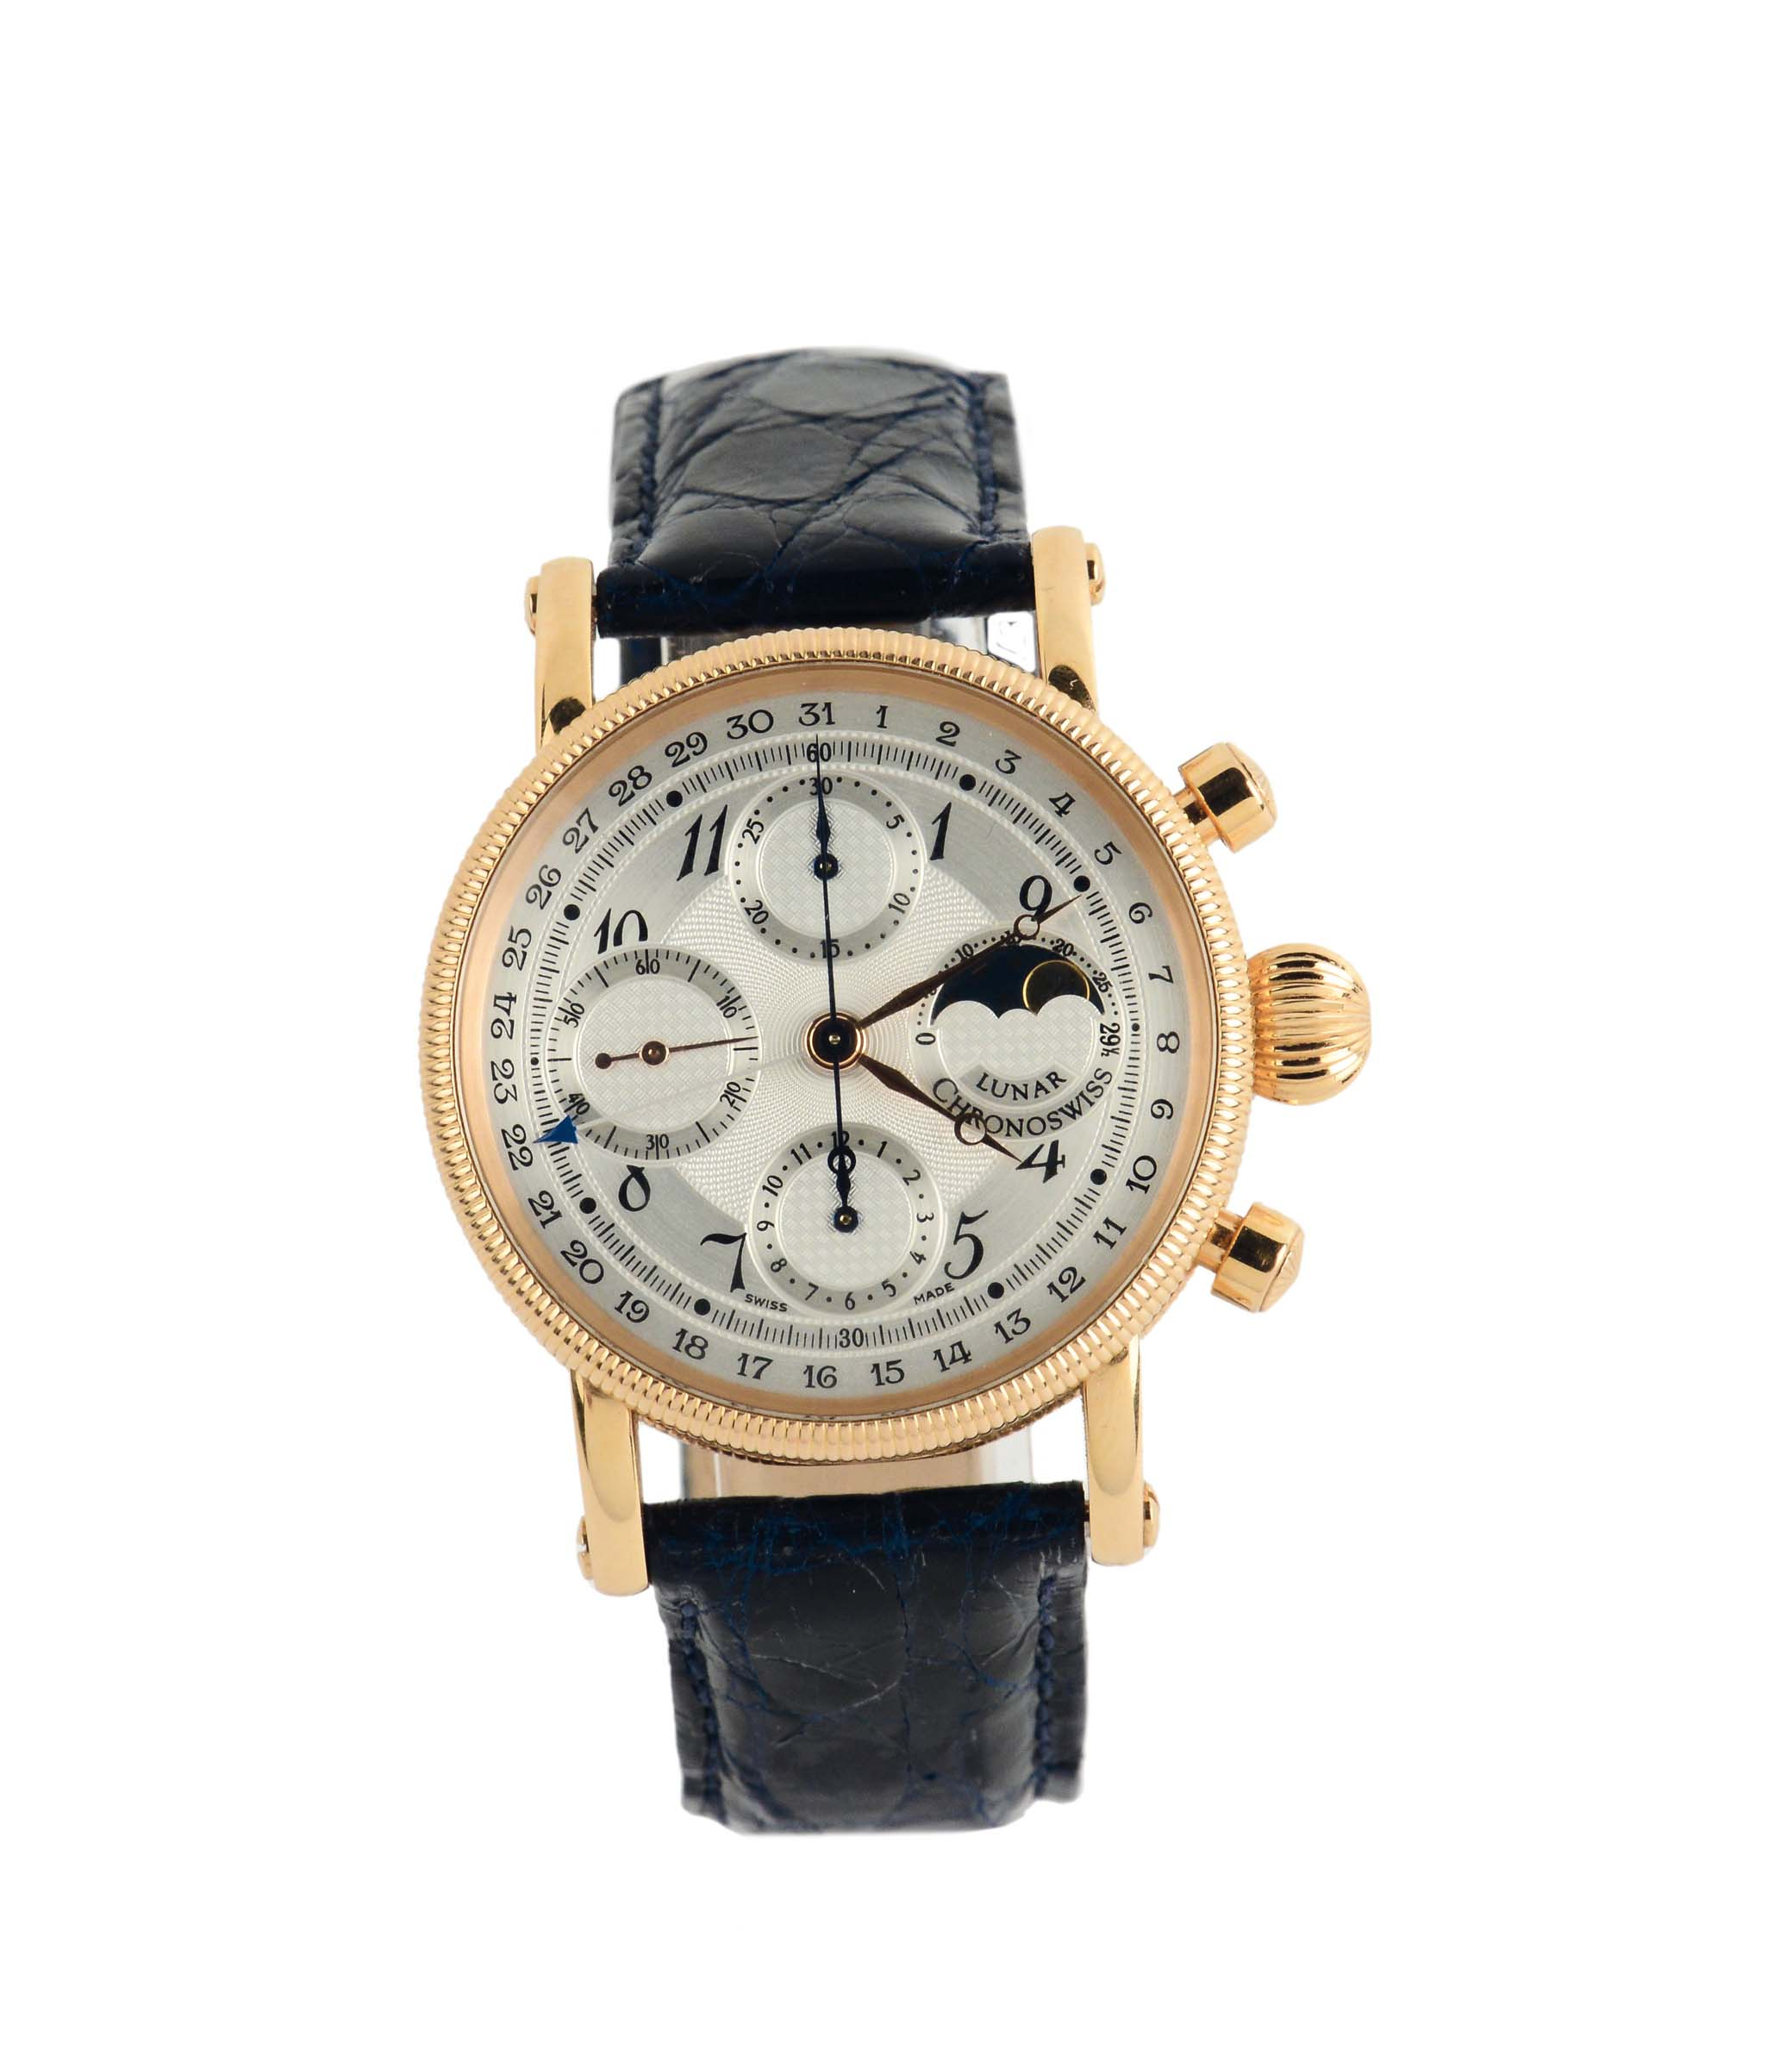 Lot 191 - Chronoswiss, Ref. CH7521R, Case No. 07196, 18K pink gold chronograph wristwatch with calendar and